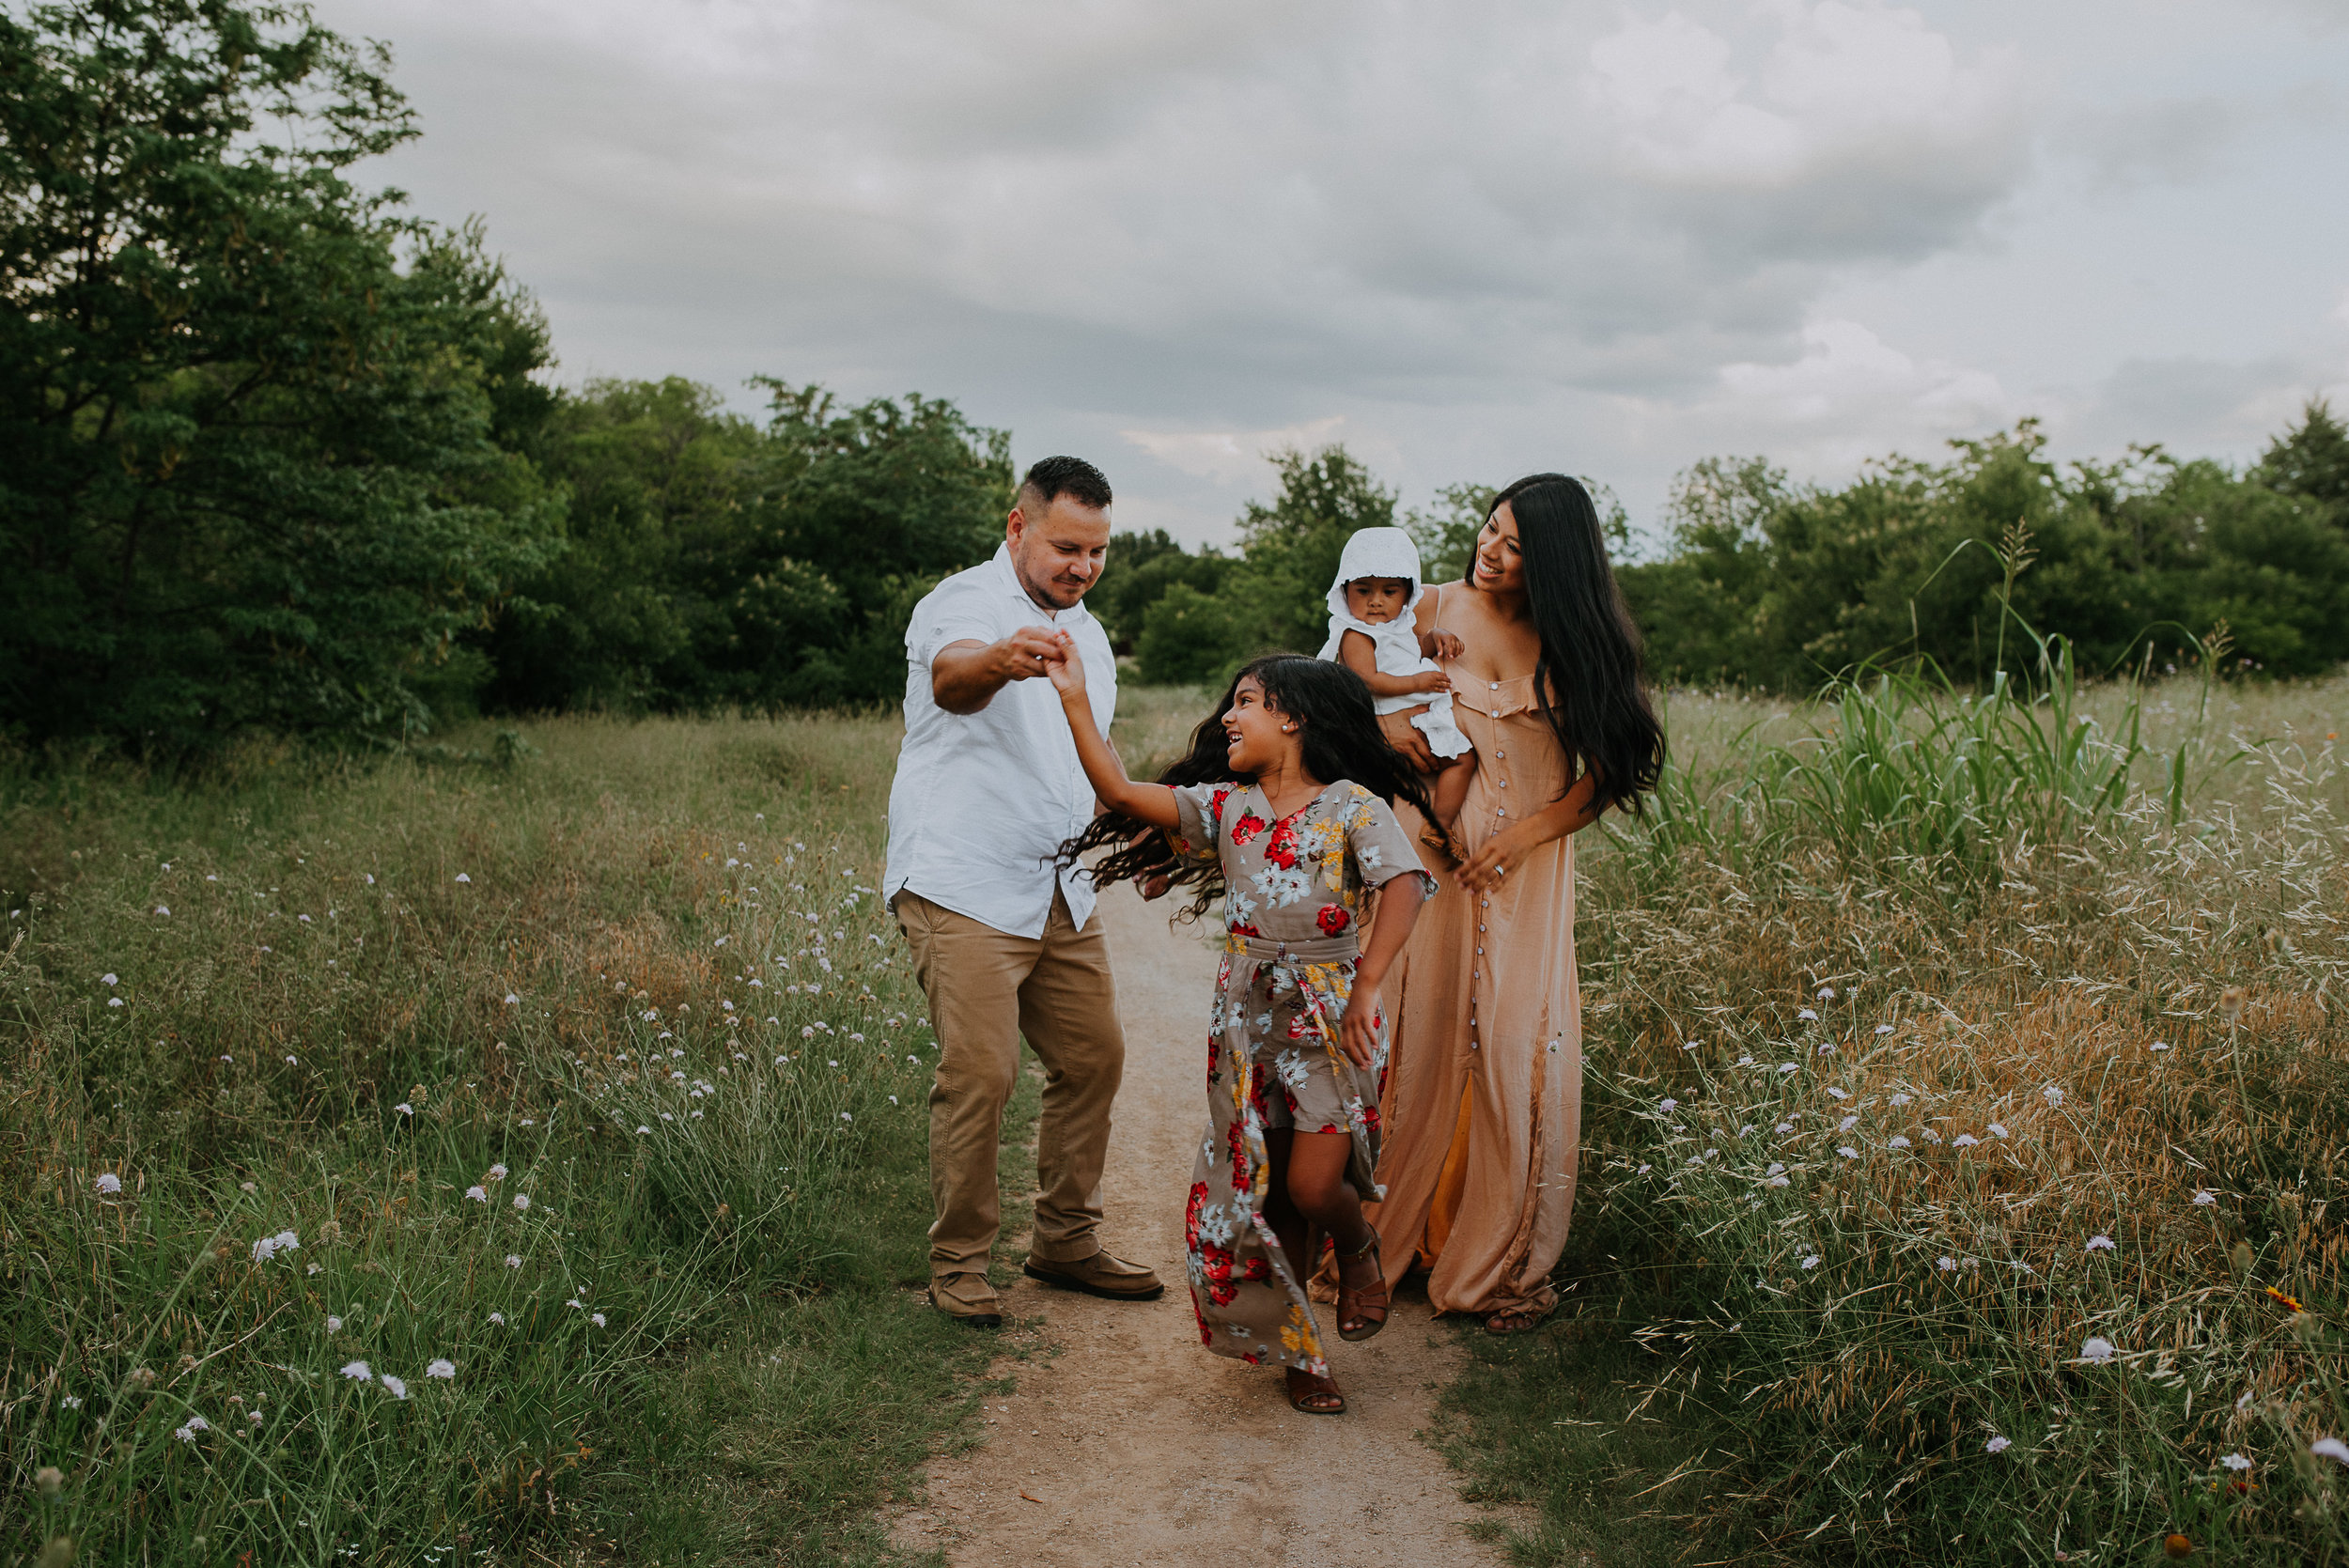 essi-marie-photography-dallas-fort-worth-texas-family-photographer-arbor-hills-nature-preserve-30